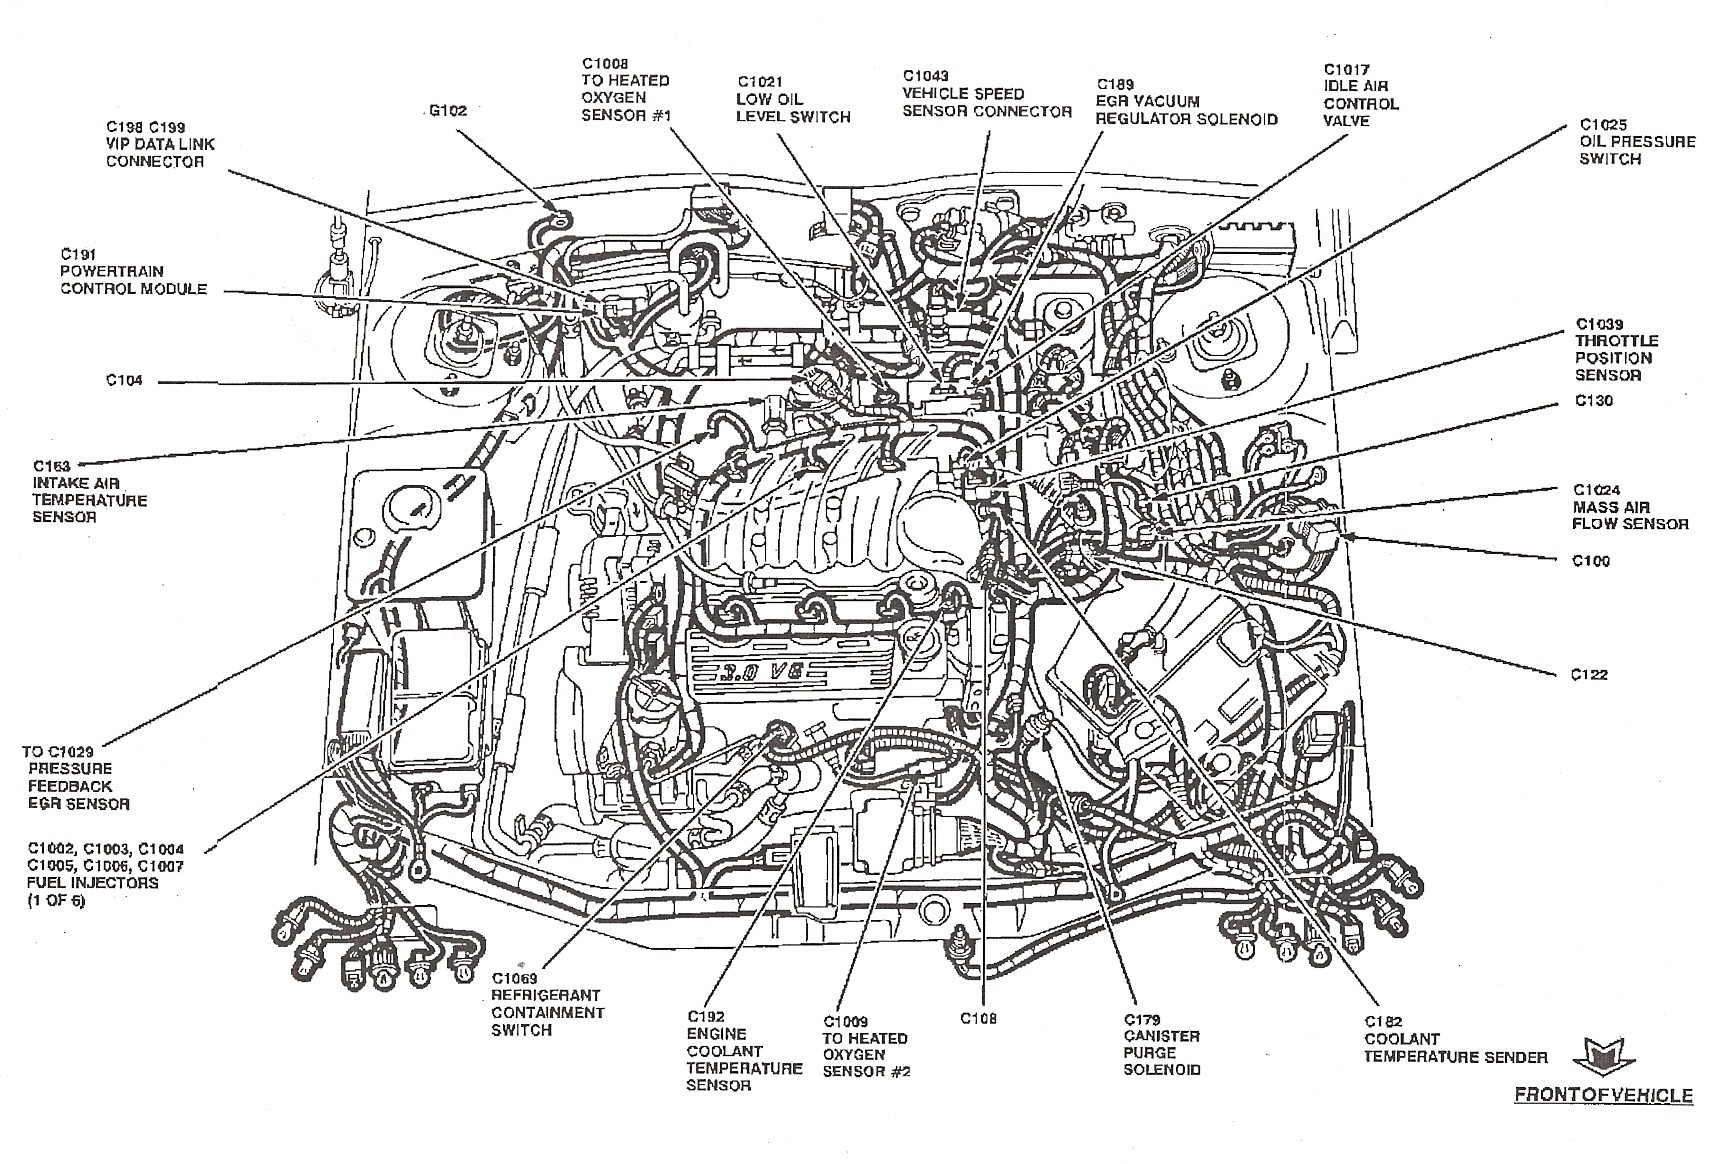 2002 ford F150 V6 Engine Diagram 1992 Escape Engine Diagram Wiring Diagrams Post Studio A Of 2002 ford F150 V6 Engine Diagram